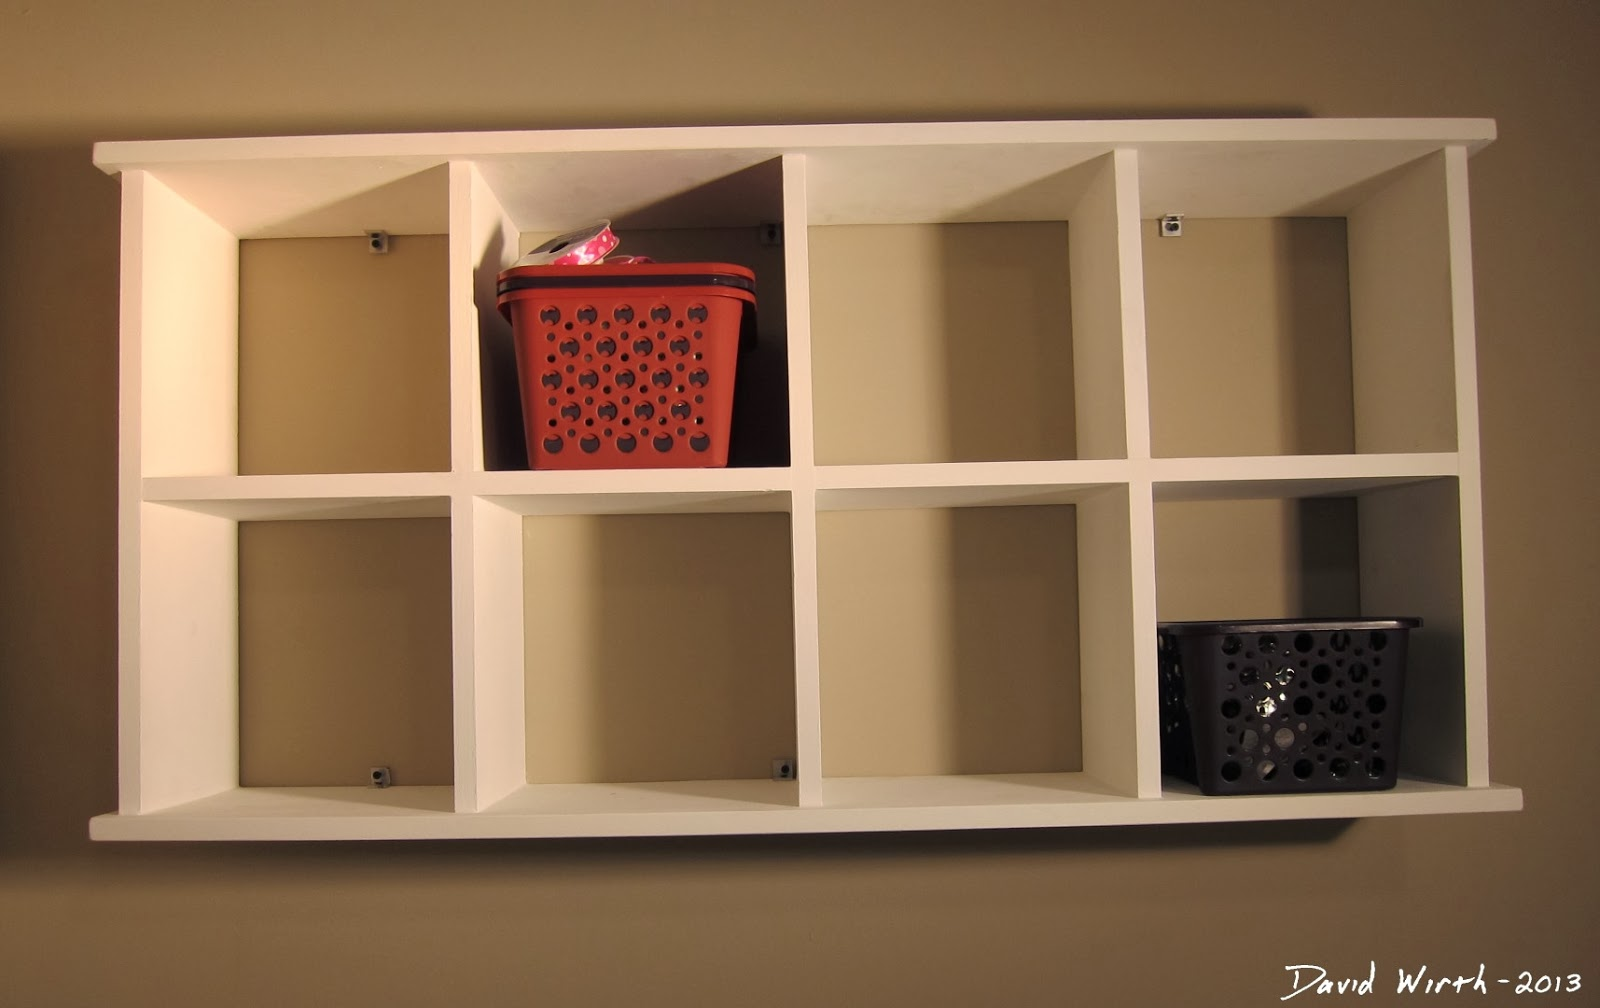 Arts and crafts room ribbon rack shelf desk clean and simple wall shelf mount to wall stud finder amipublicfo Gallery